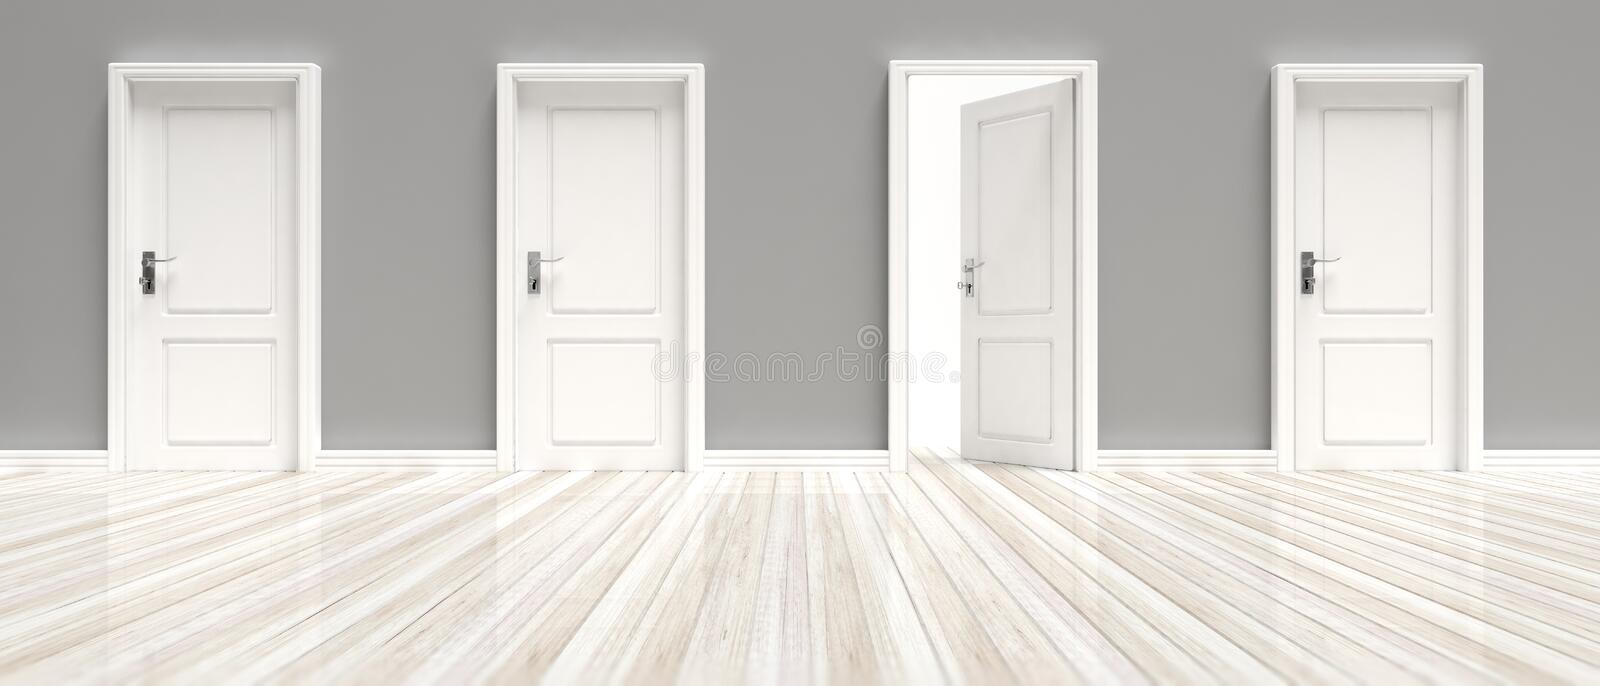 Closed and open doors on grey wall and white wooden floor background, banner. 3d illustration stock illustration